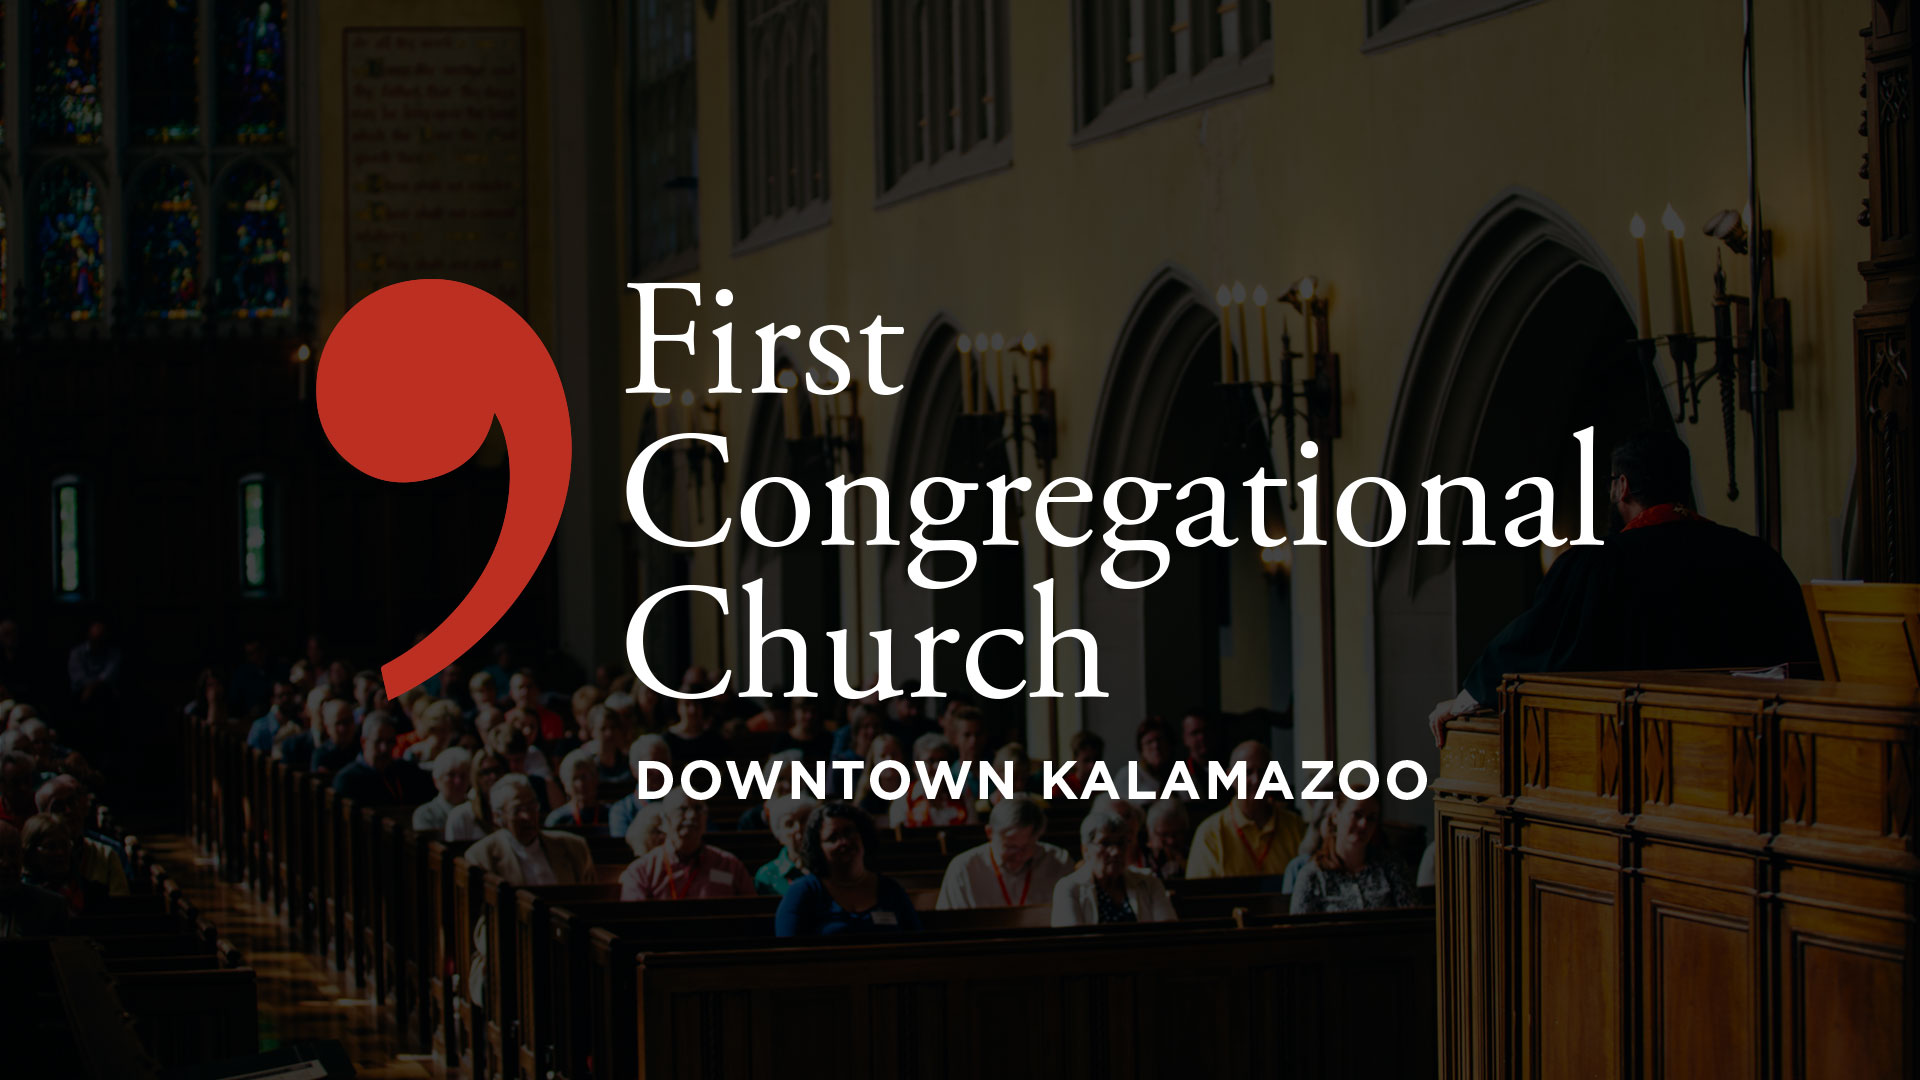 kalamazoo single parents Pregnant teenagers and teenage mothers receive help through covenant house skip to main content secondary navigation  and single parenthood, and we work to make .